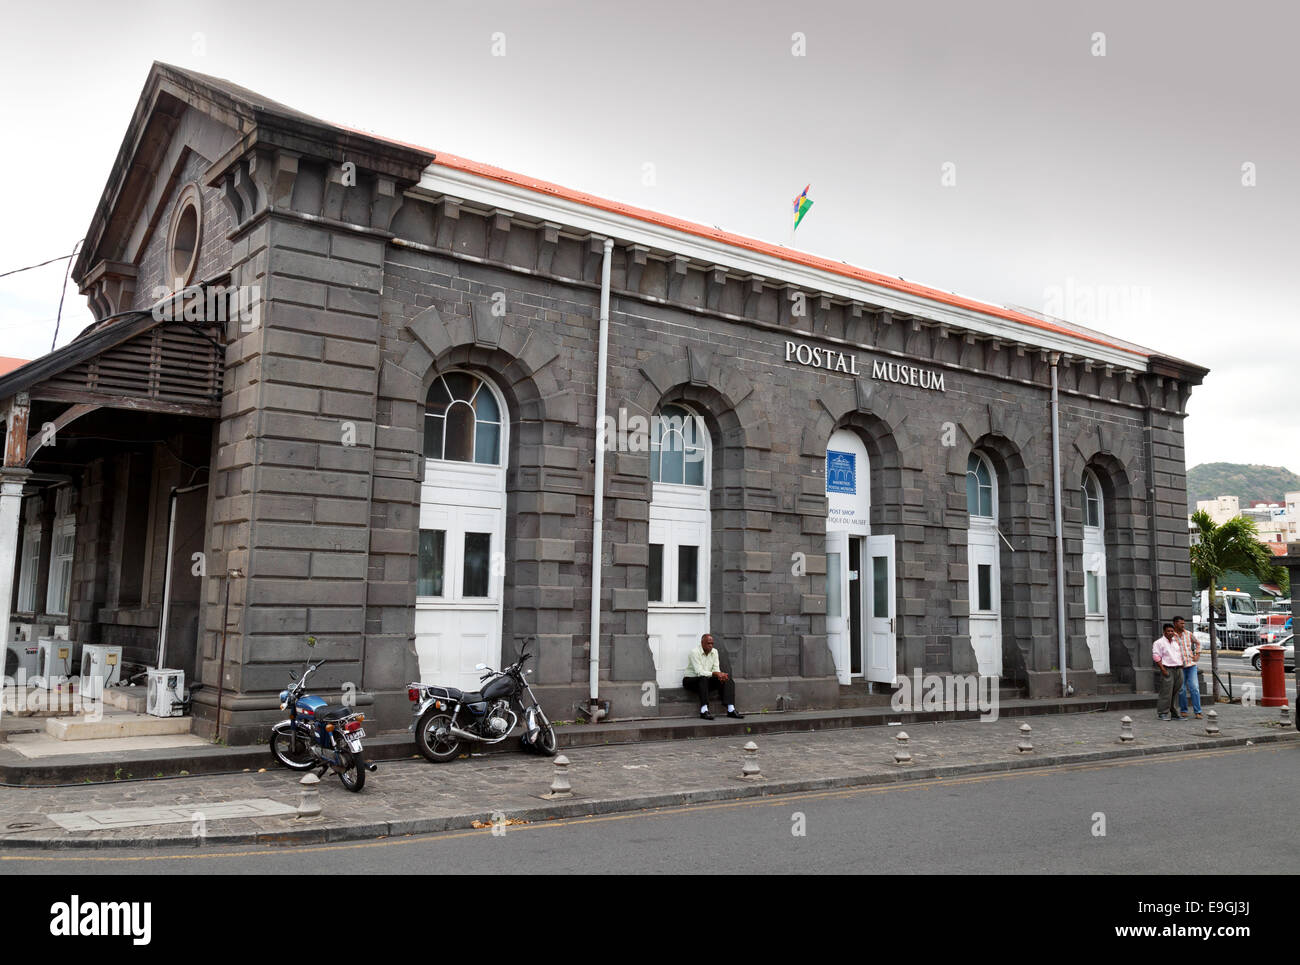 The Postal Museum, Port Louis, Mauritius Stock Photo